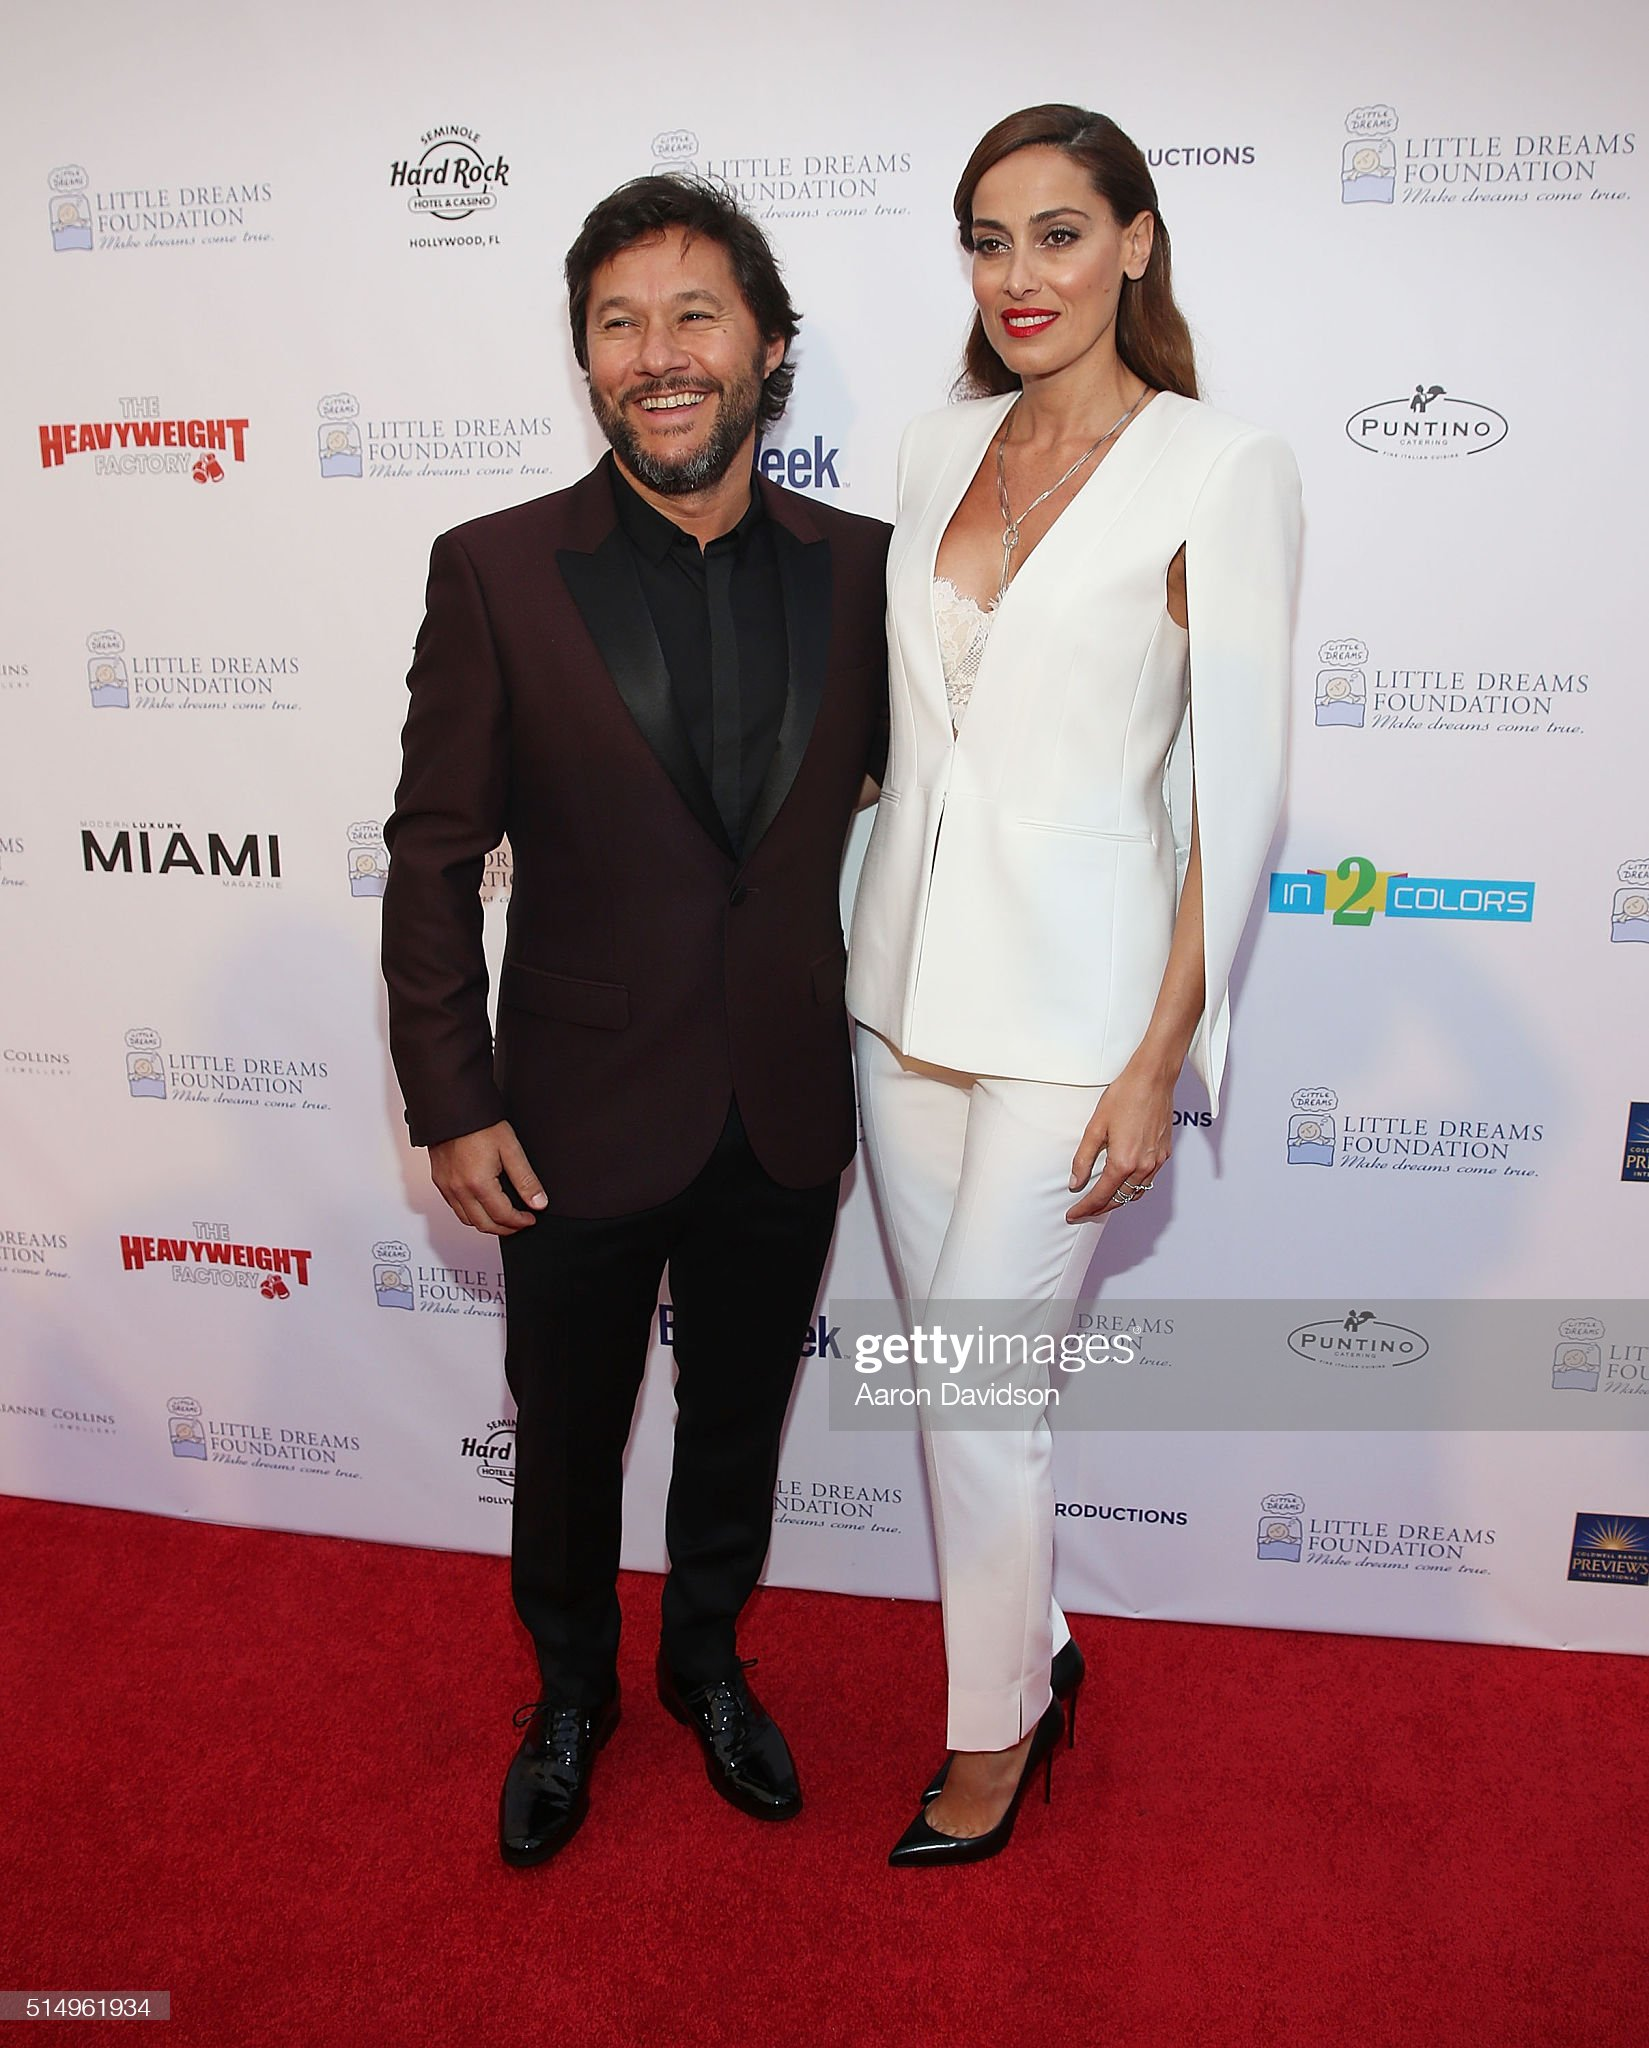 ¿Cuánto mide Diego Torres? - Altura Diego-torres-and-debora-bello-attend-the-little-dreams-foundation-picture-id514961934?s=2048x2048